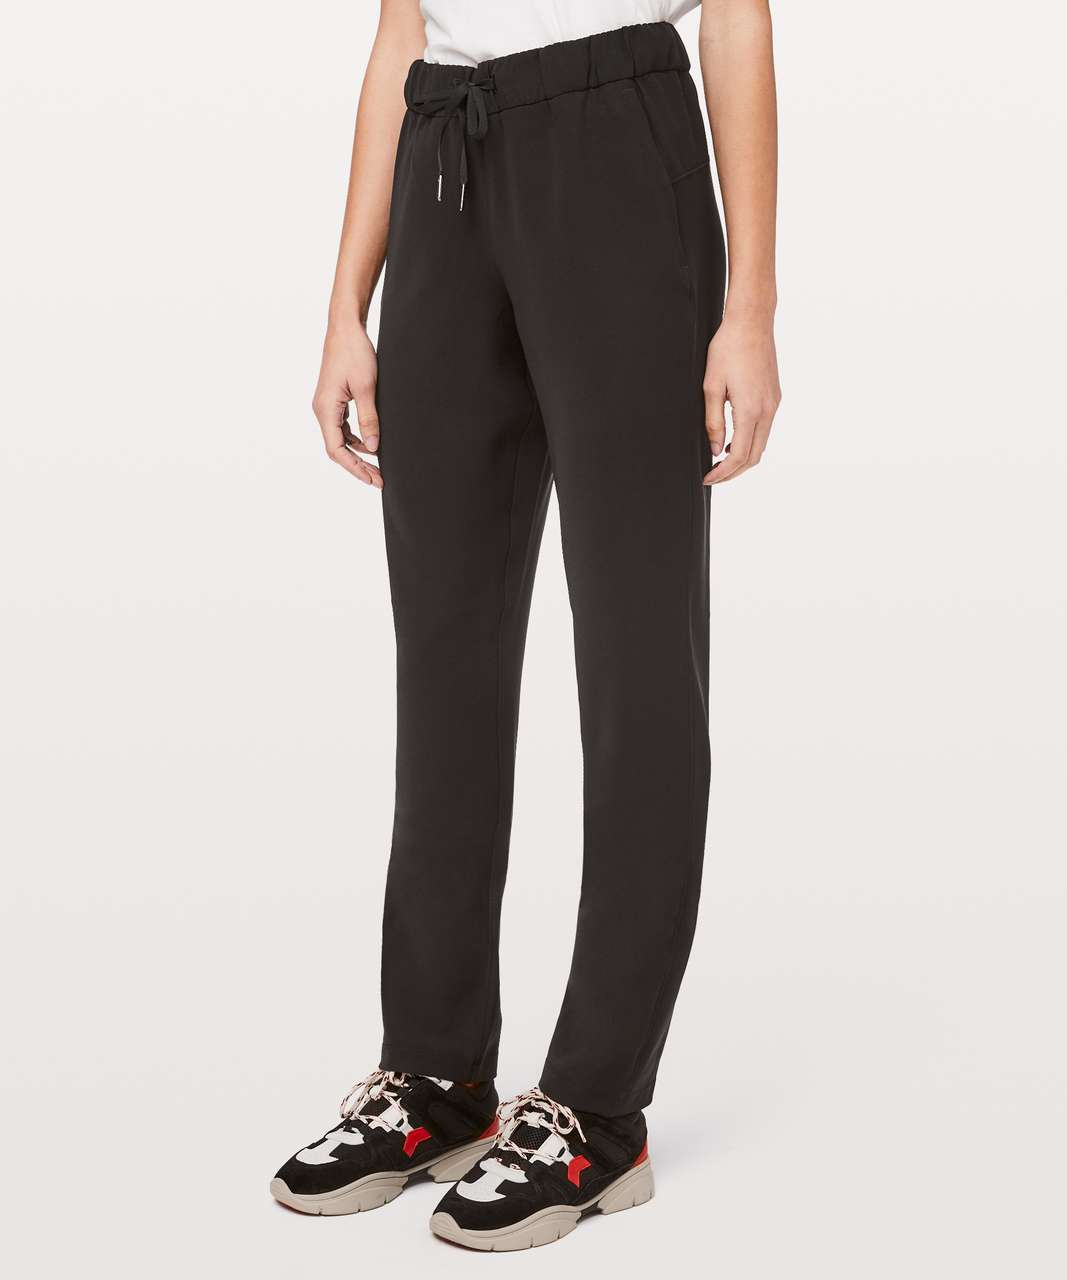 "Lululemon On The Fly Pant Woven Tall 33"" - Black"